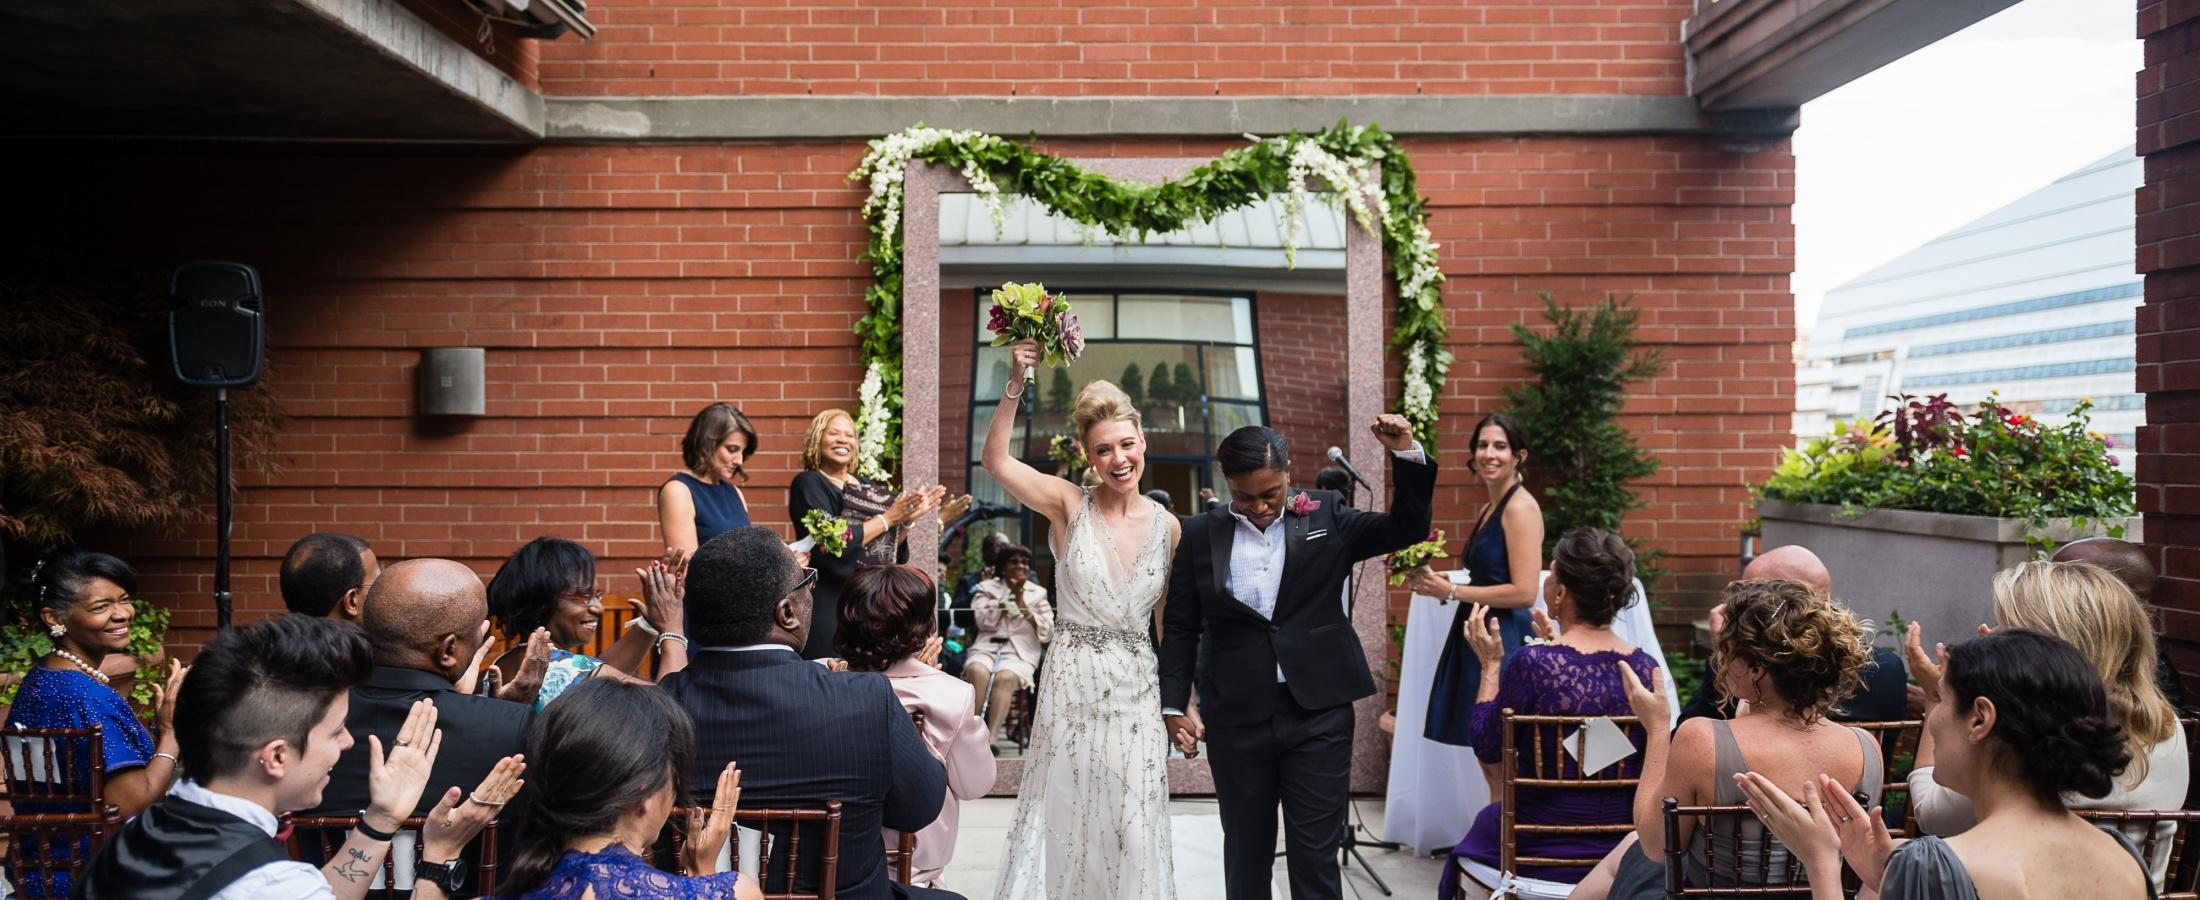 Our outdoor rooftop offers an intimate space for small wedding ceremonies.